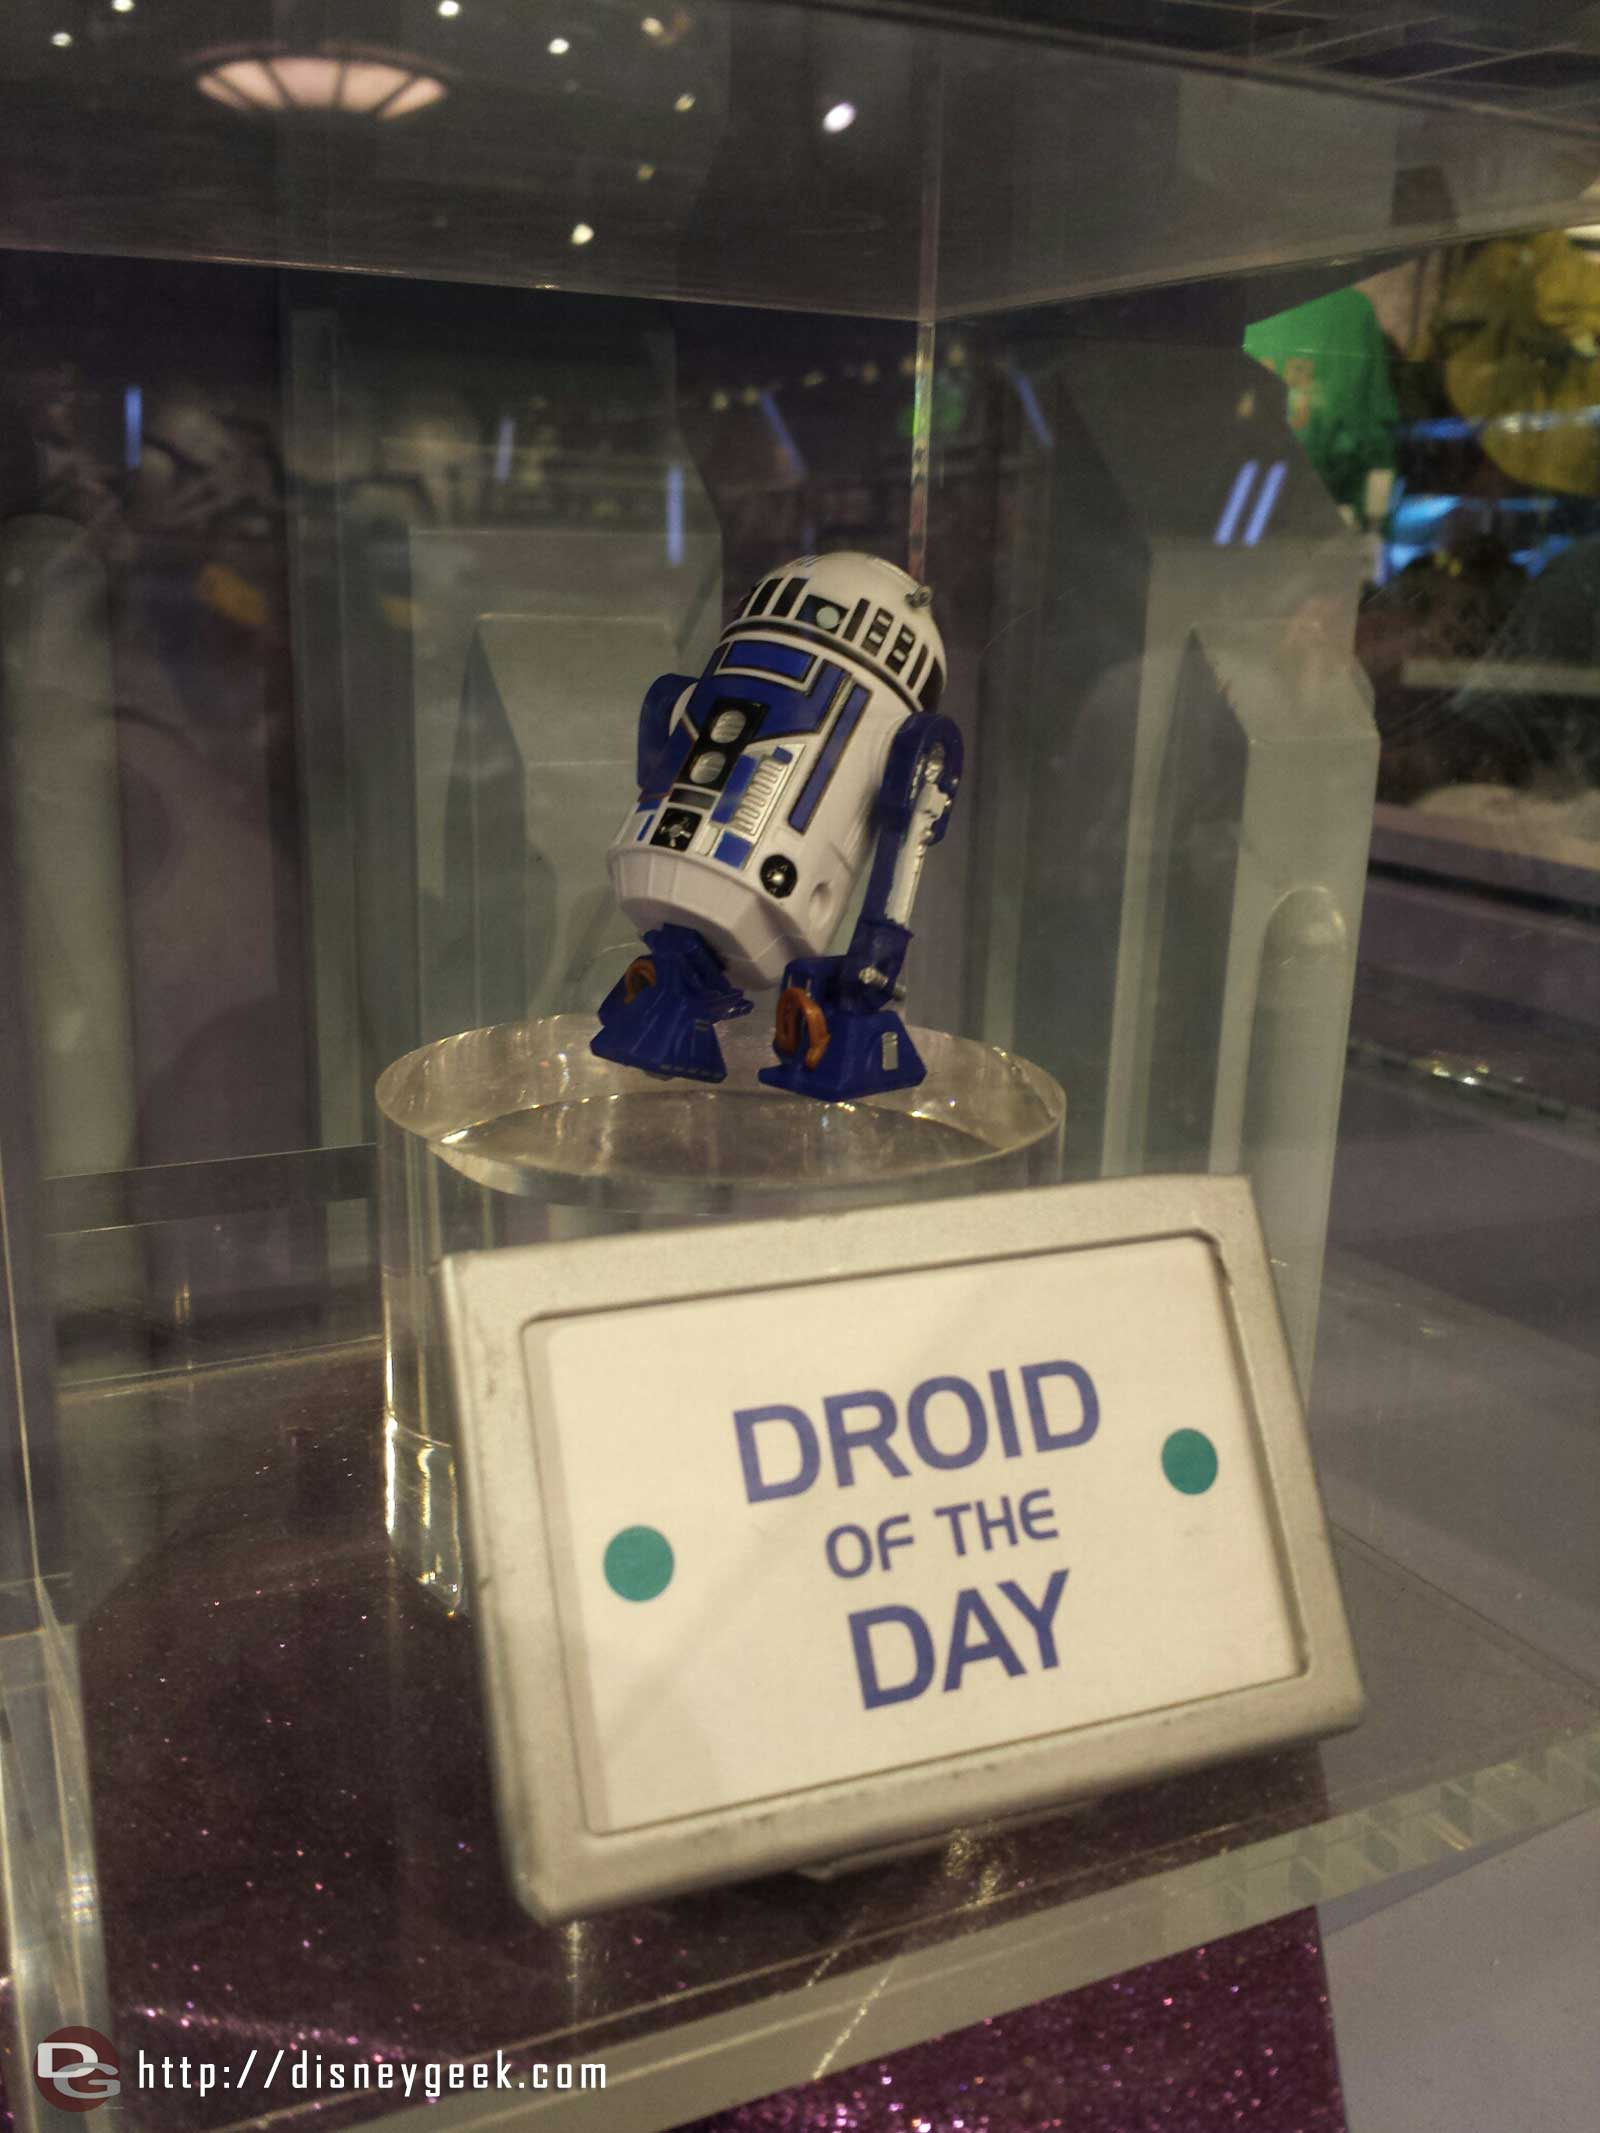 The Droid of the day in the Star Trader #Disneyland